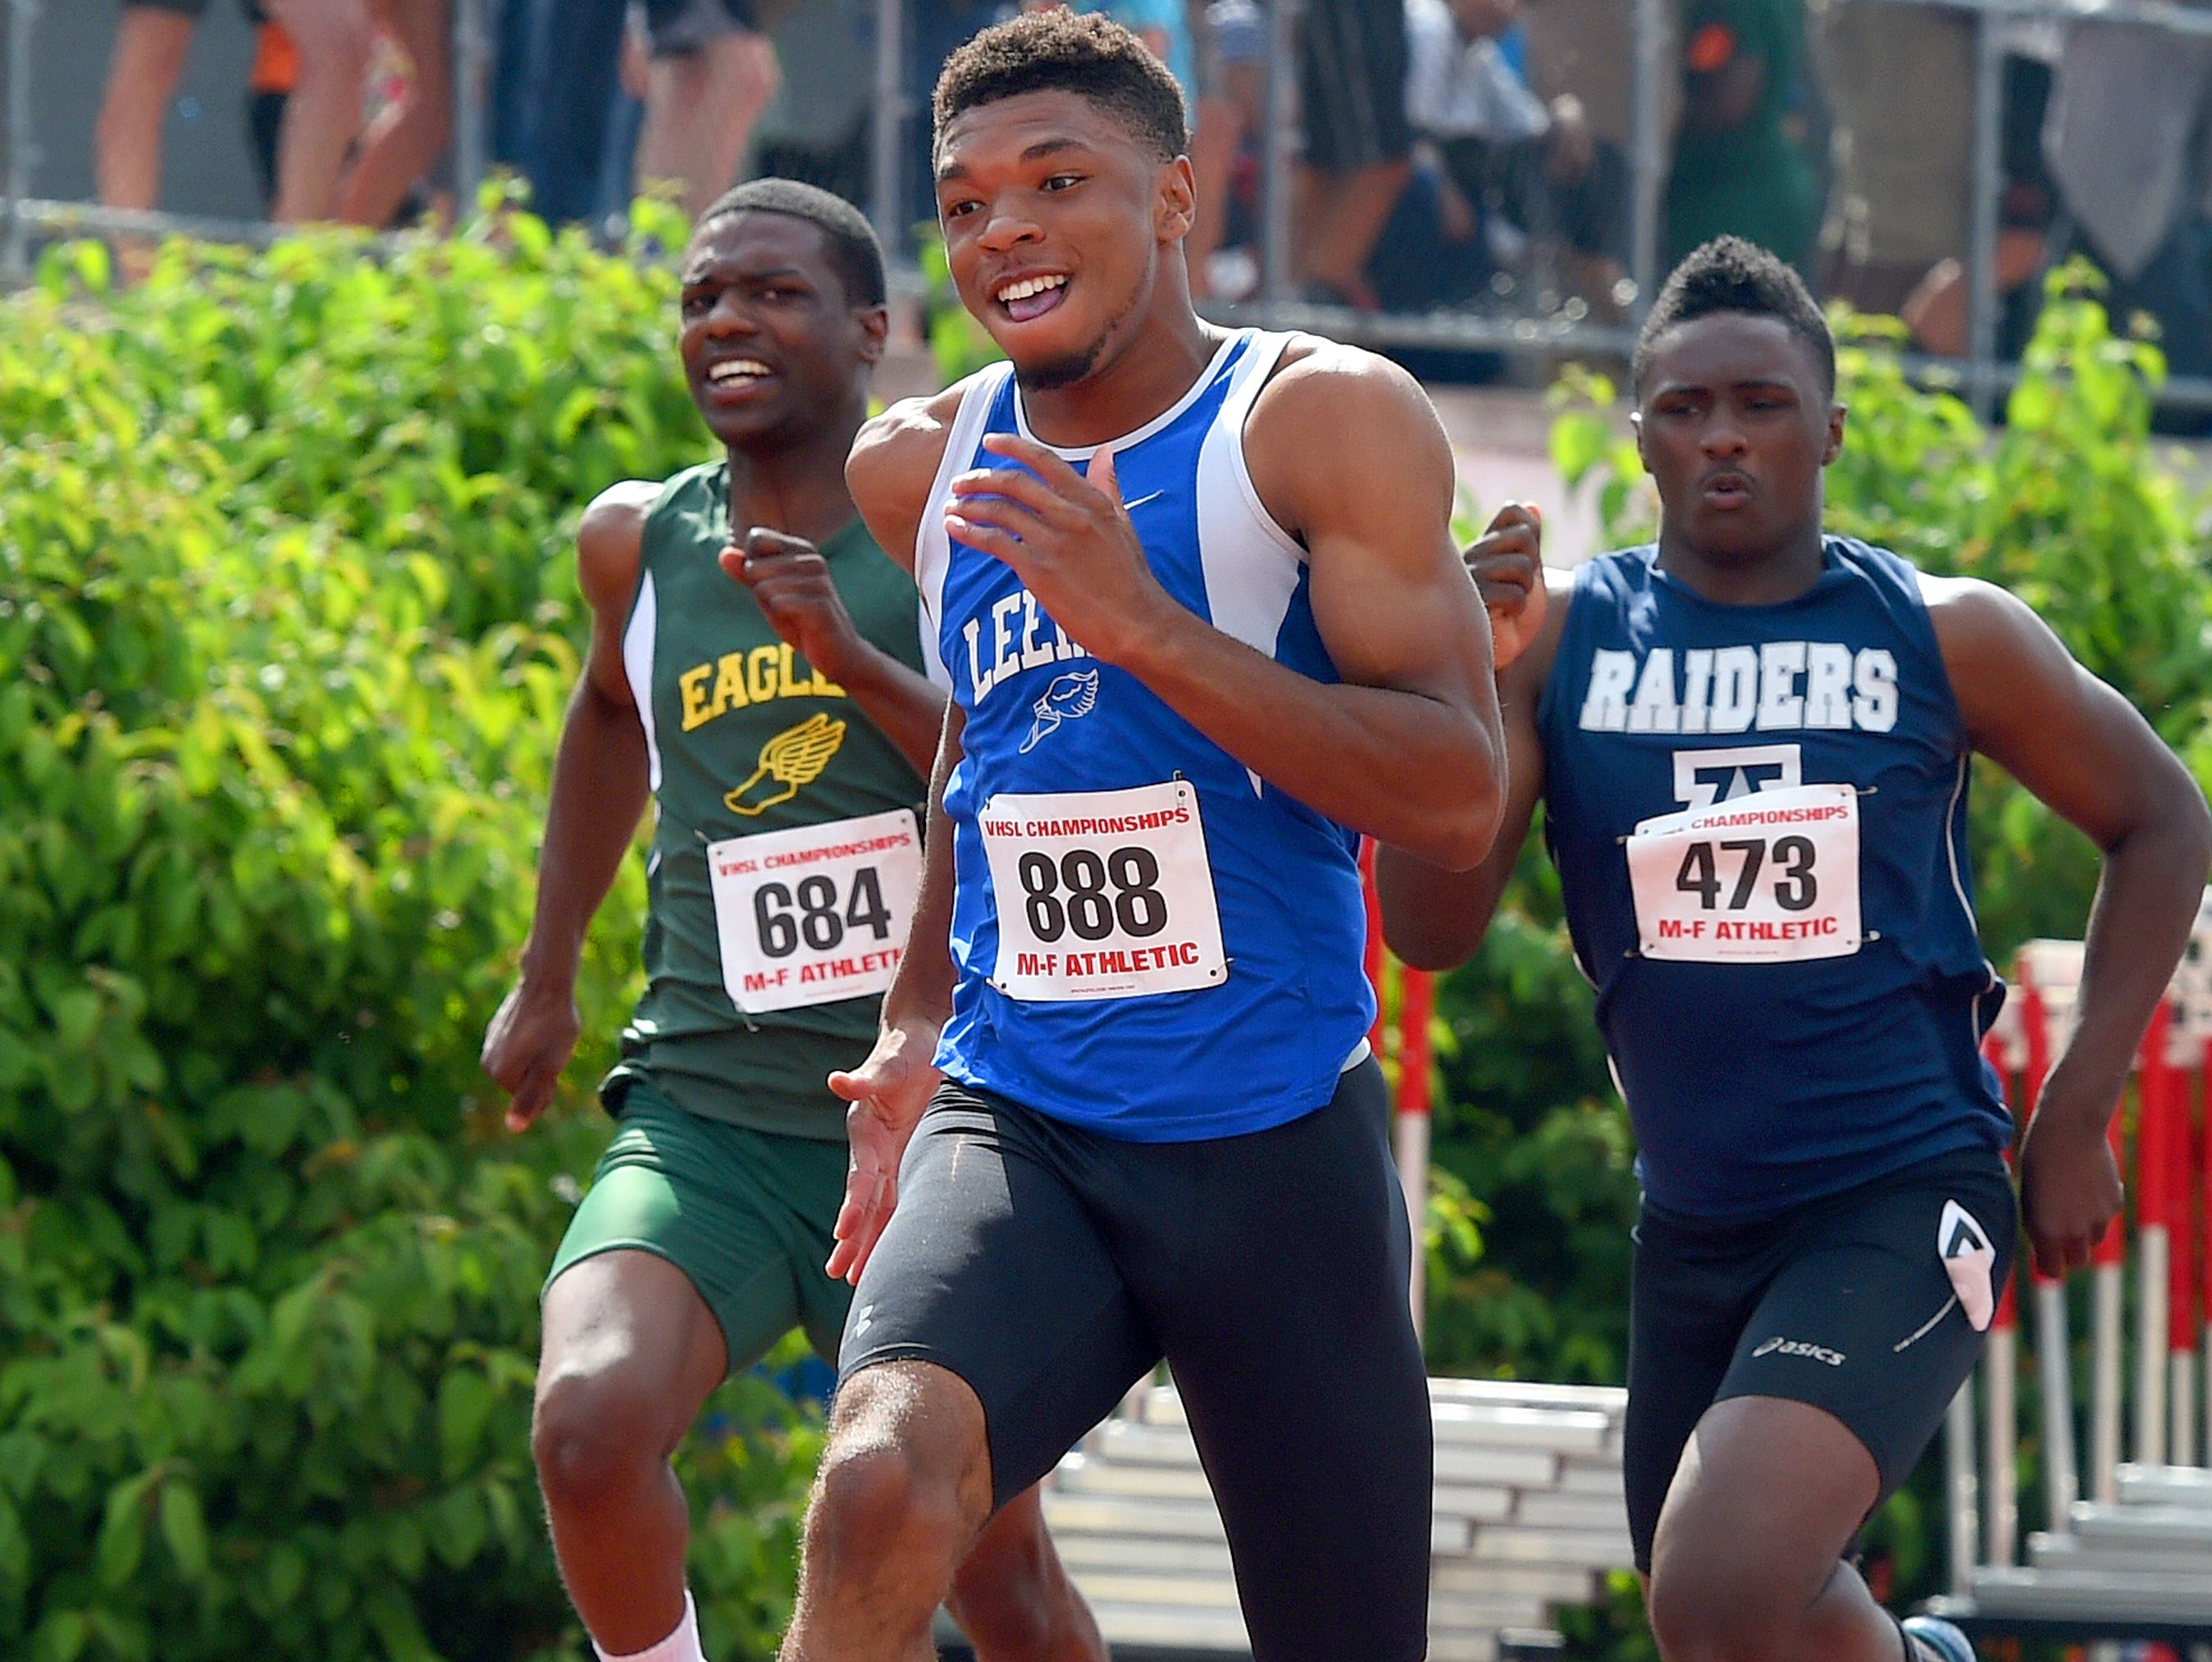 Robert E. Lee's Iyon Oravitz capped his 2015 outdoor season with a first in the 400, a second in the 100 and a third in the 200 at the Group 2A meet, then won the 2A indoor crown in the 300 in February.